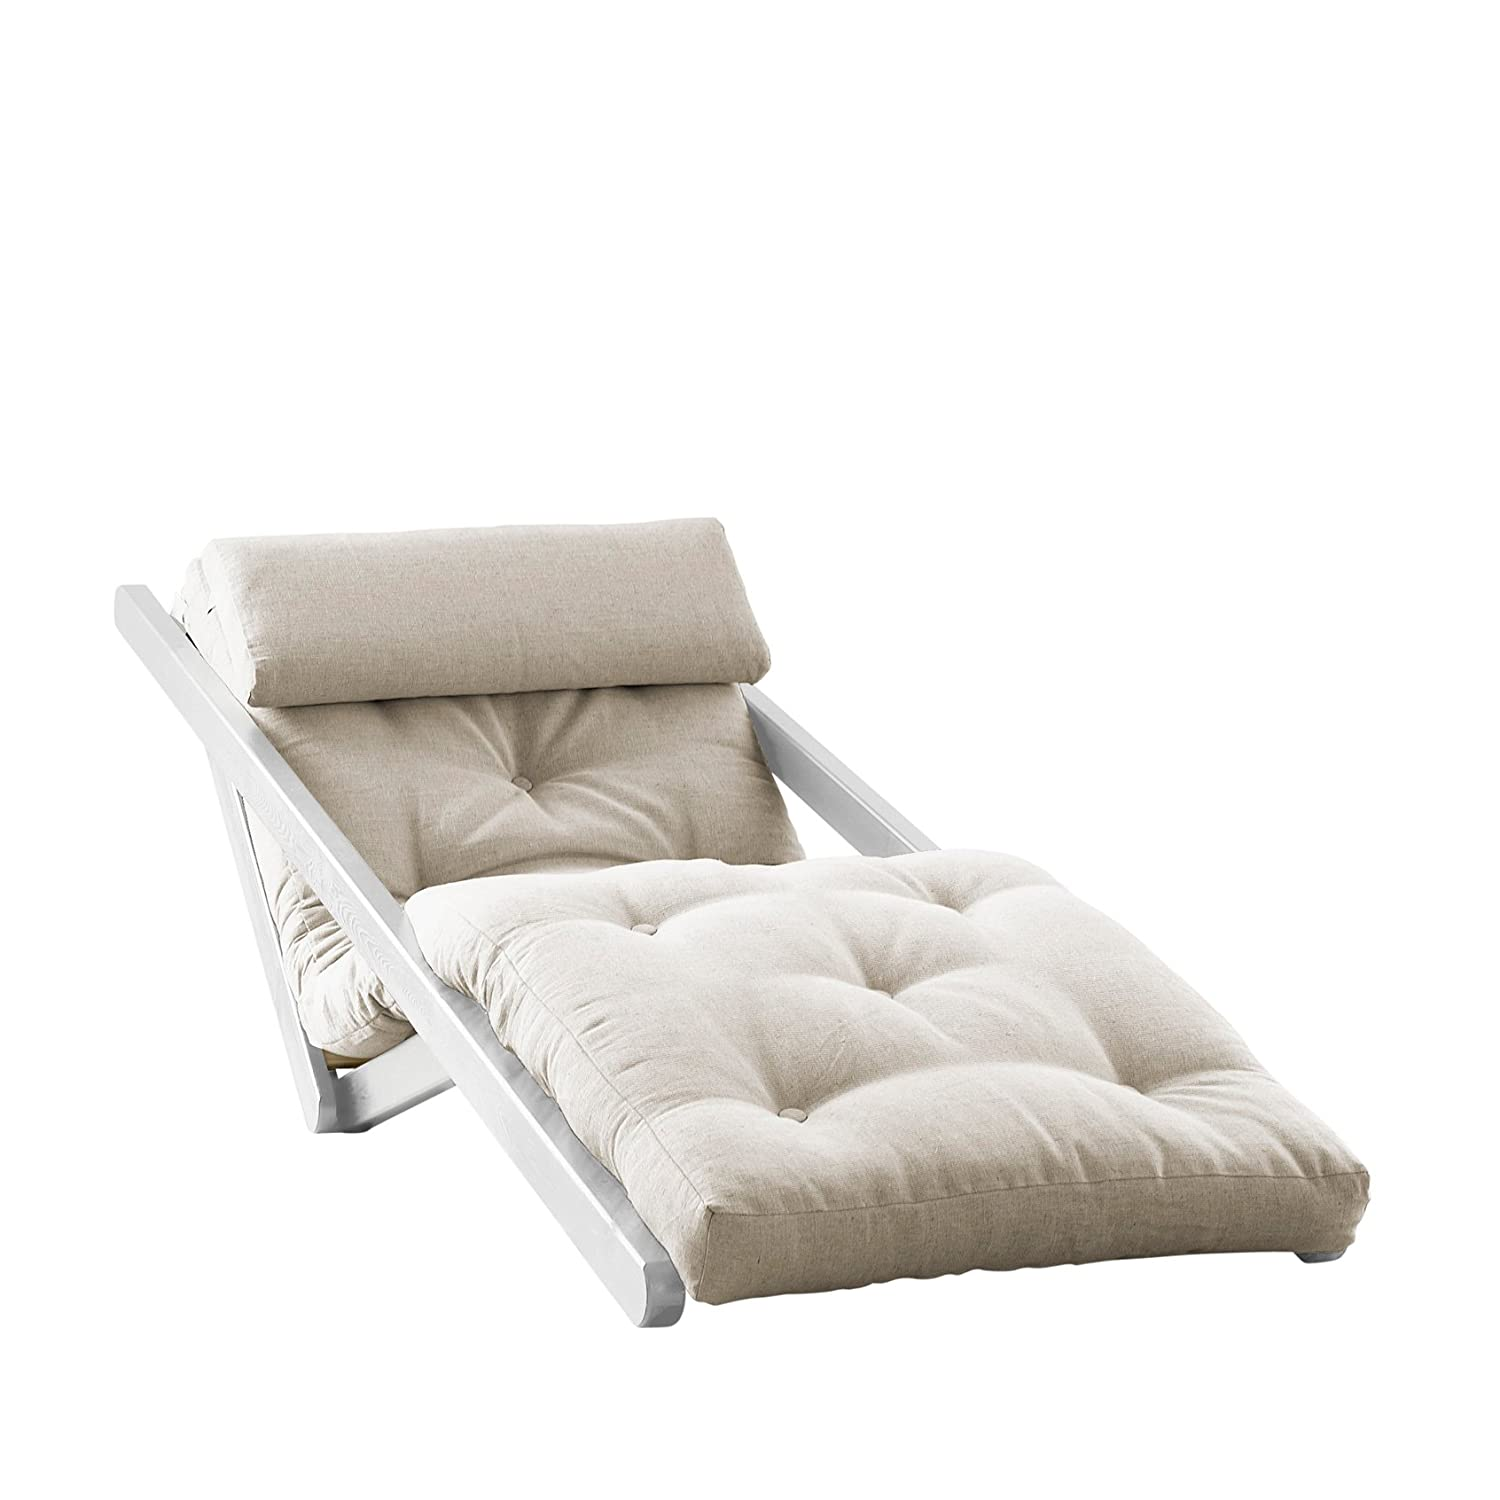 company mattresses chair natural bed futon mattress shop with product down panama